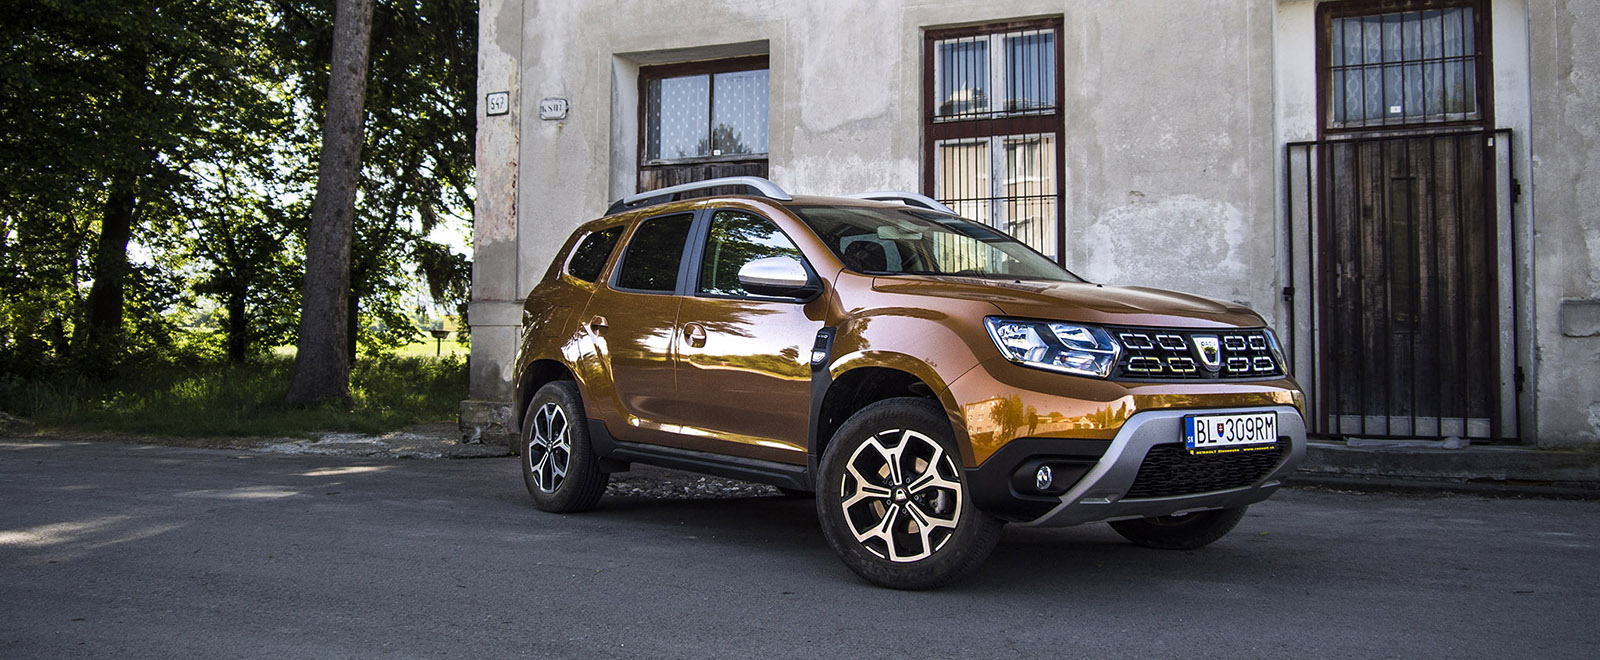 test dacia duster tce 125 4 4 druh kr t ale teraz v borne. Black Bedroom Furniture Sets. Home Design Ideas